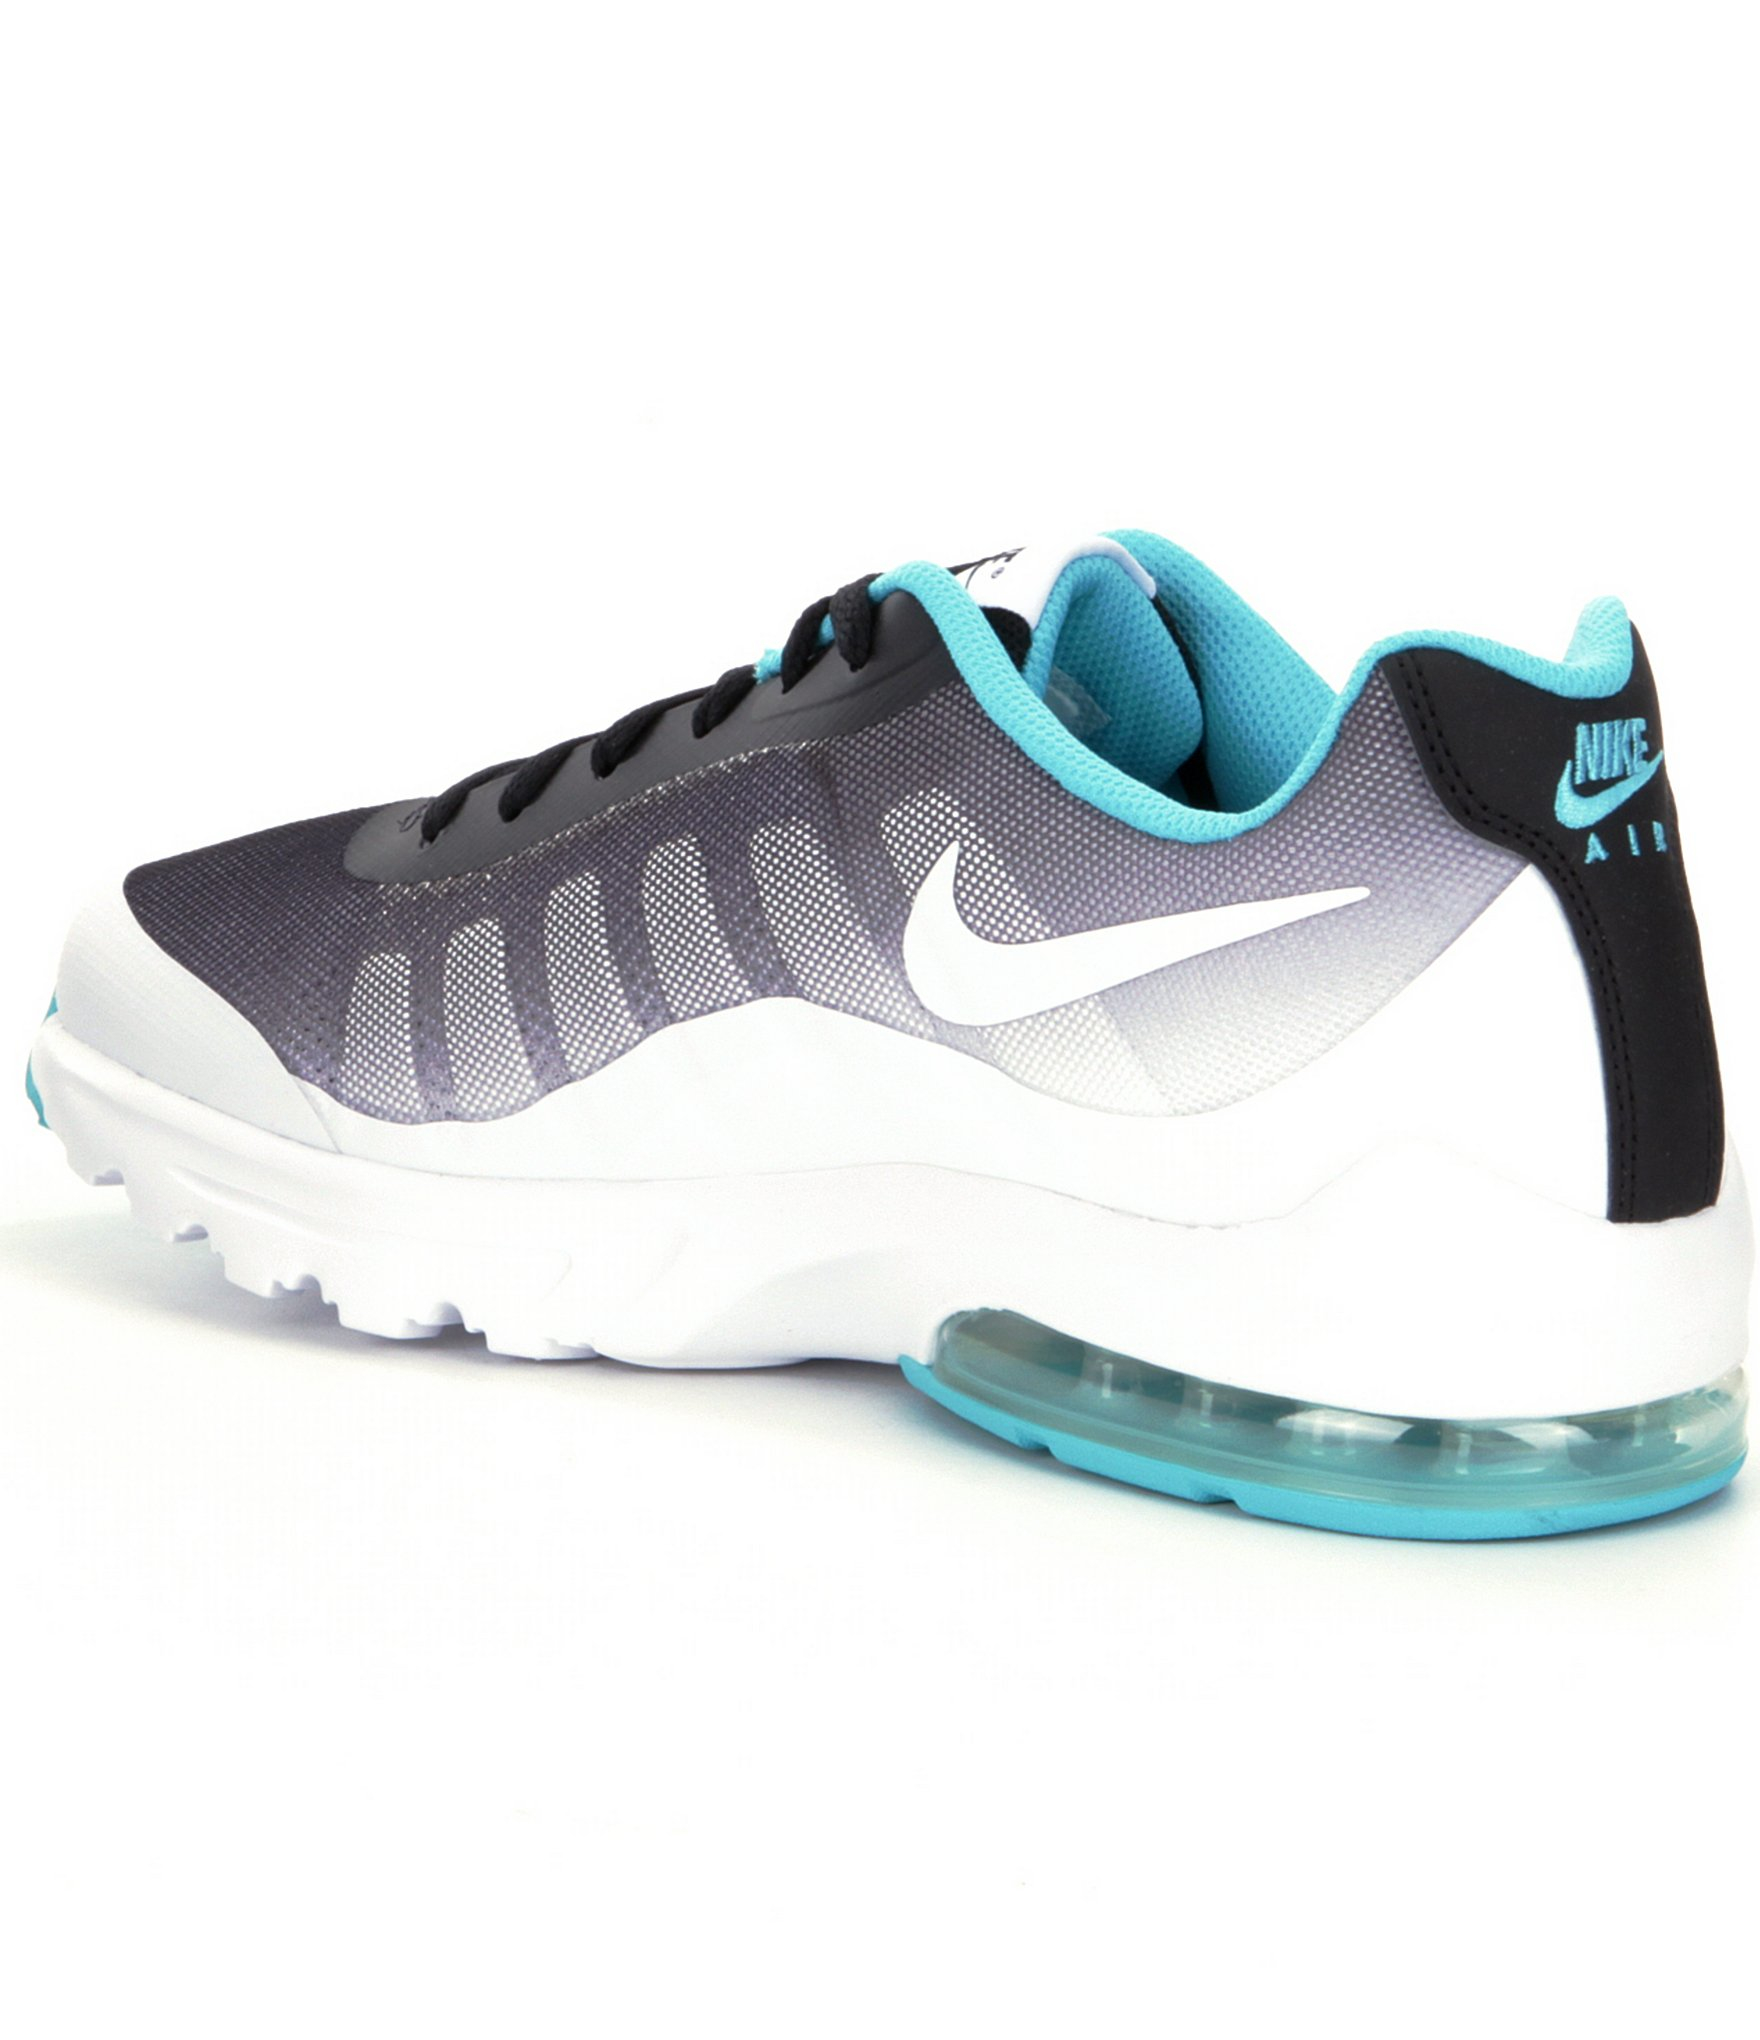 118480cf73 ... reduced lyst nike mens air max invigor print lifestyle shoes in blue  for men fd90d d6542